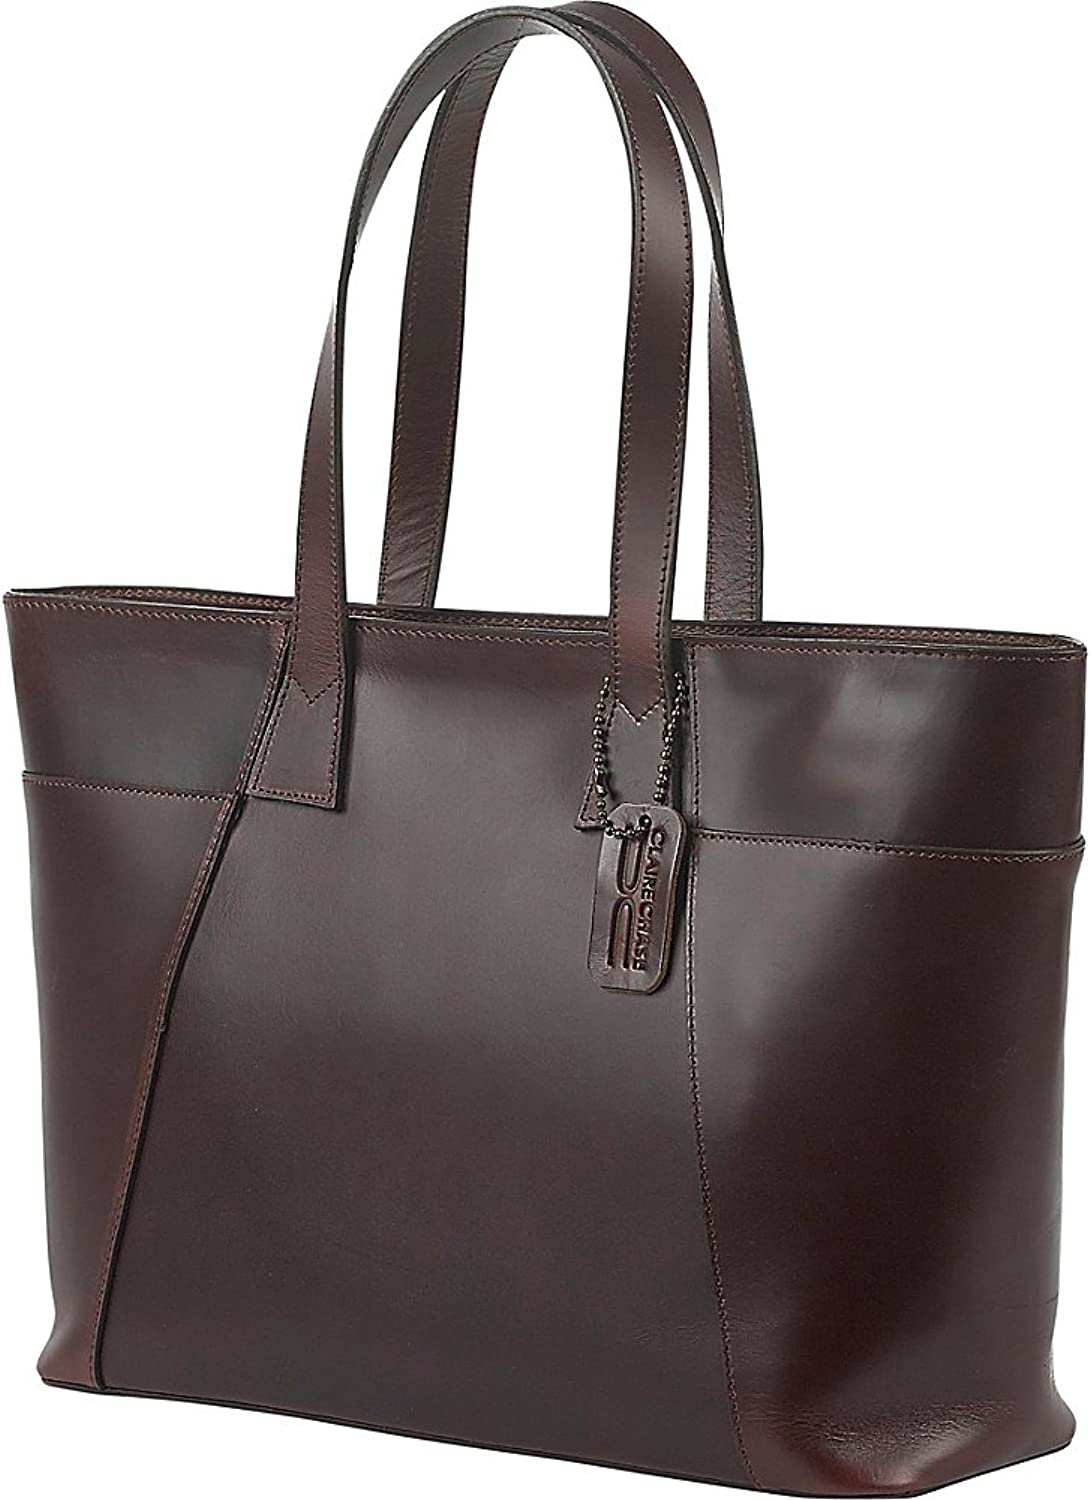 Claire Chase Women's Classic Zippered Tote Shoulder Bag, Chestnut Brown, One Size